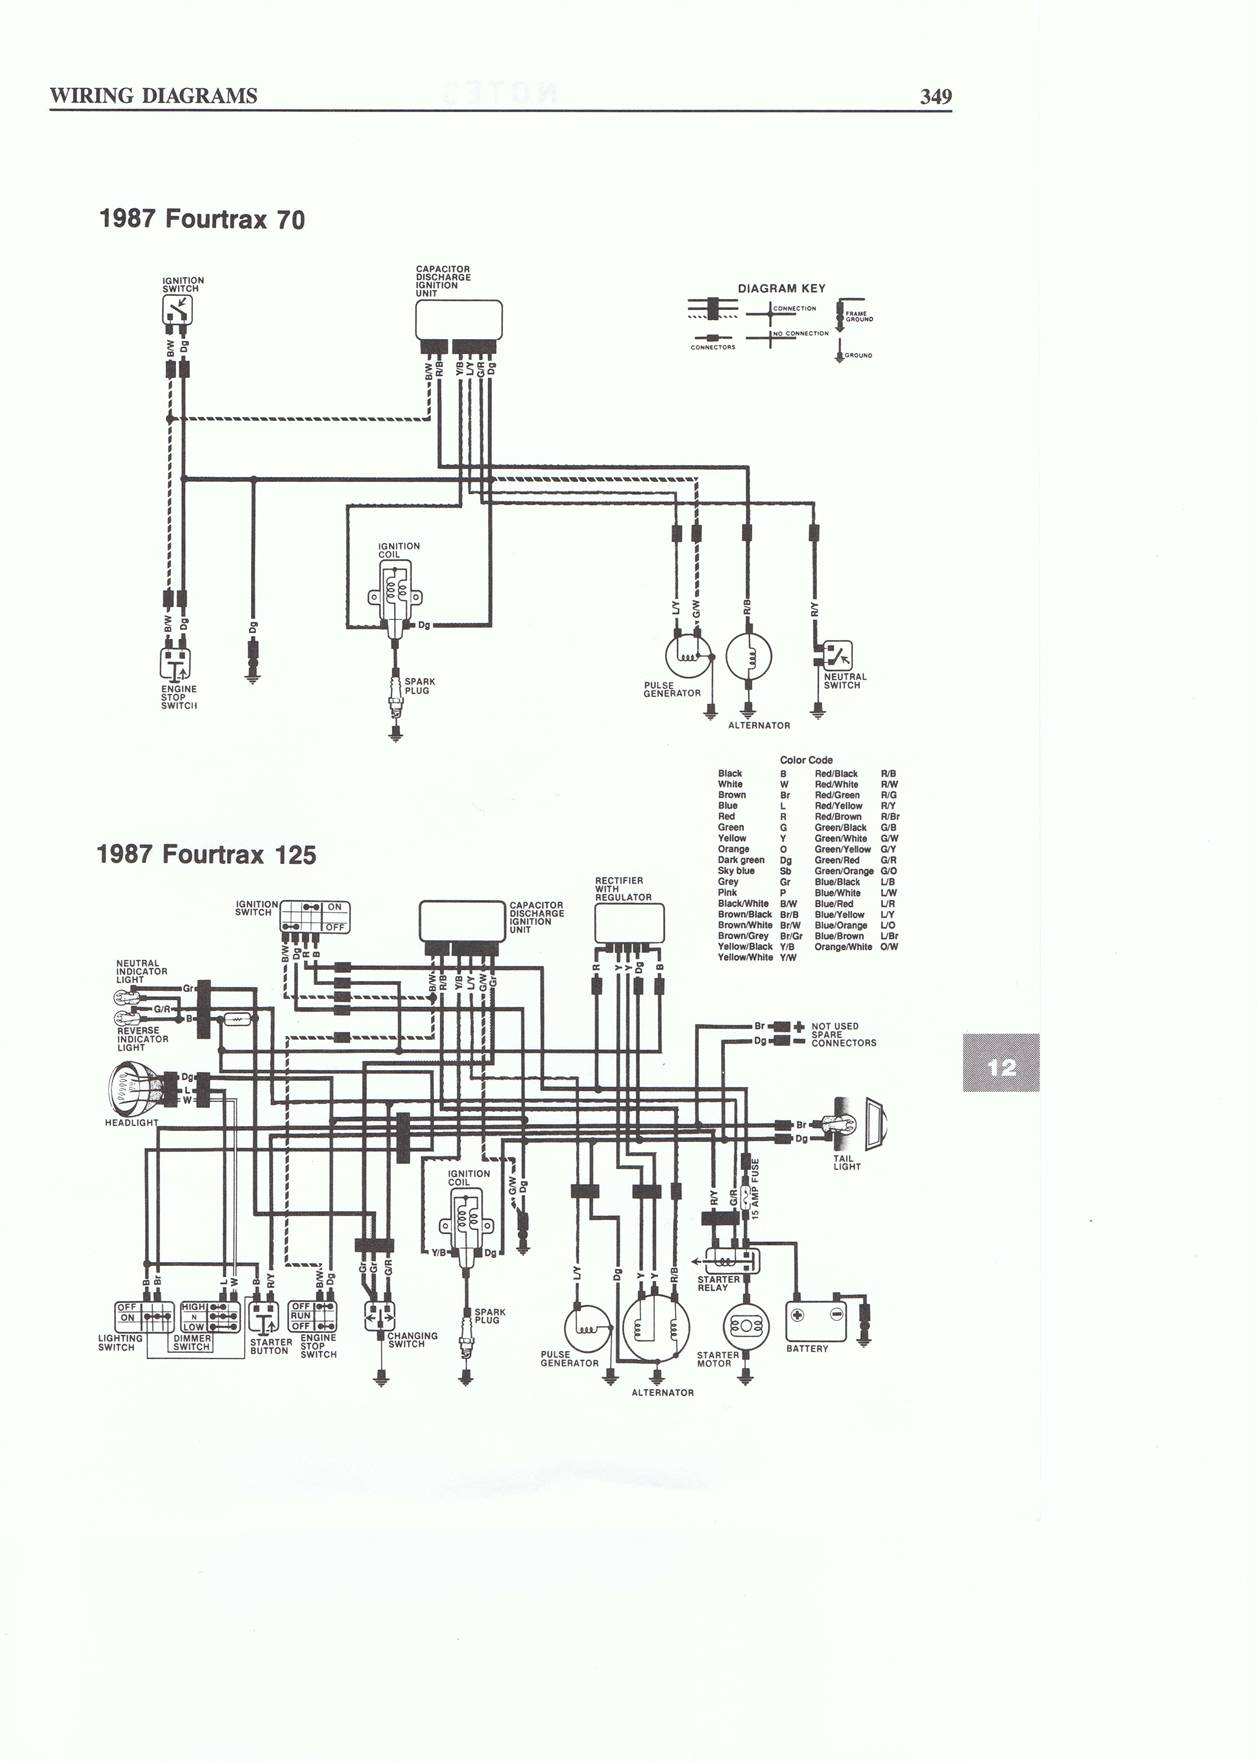 gy6 engine wiring diagram?t=1398725710 gy6 engine wiring diagram gy6 150cc wiring diagram at panicattacktreatment.co